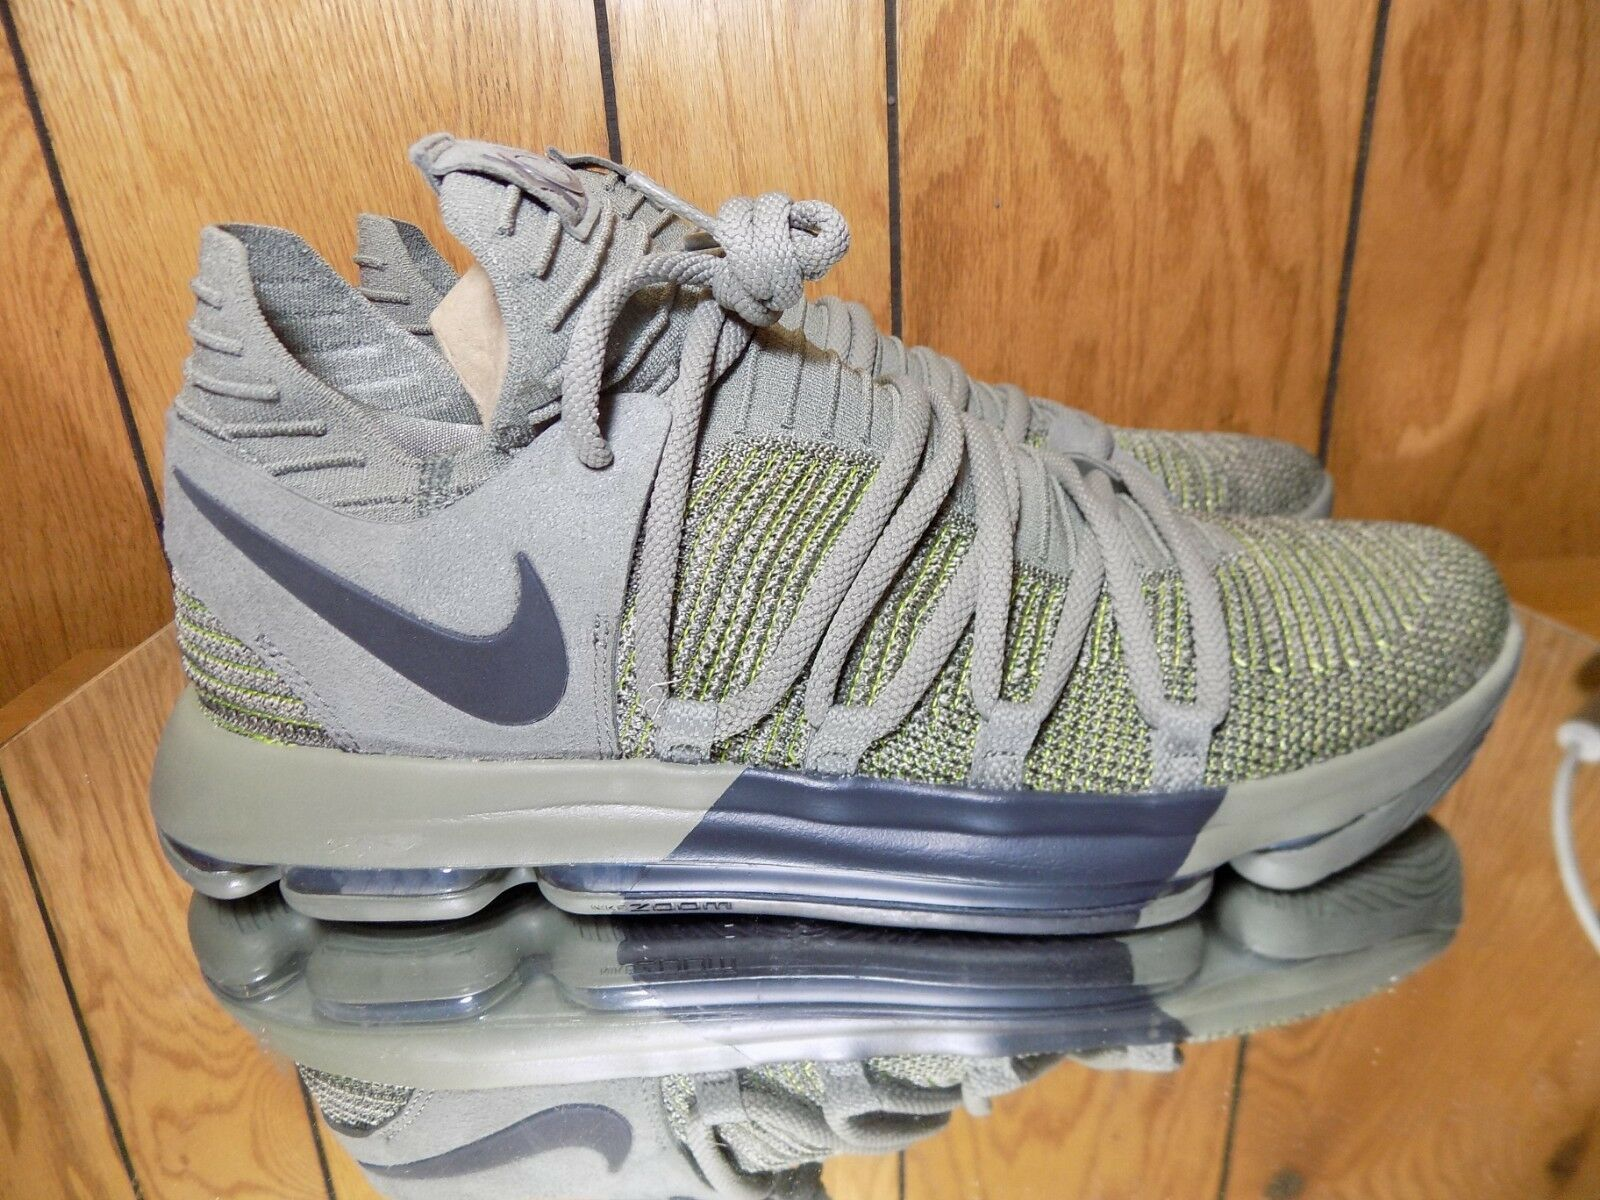 Nike Zoom KD10 LMTD Limited Mens Multi Size Basketball shoes 897817 002 s 11.5